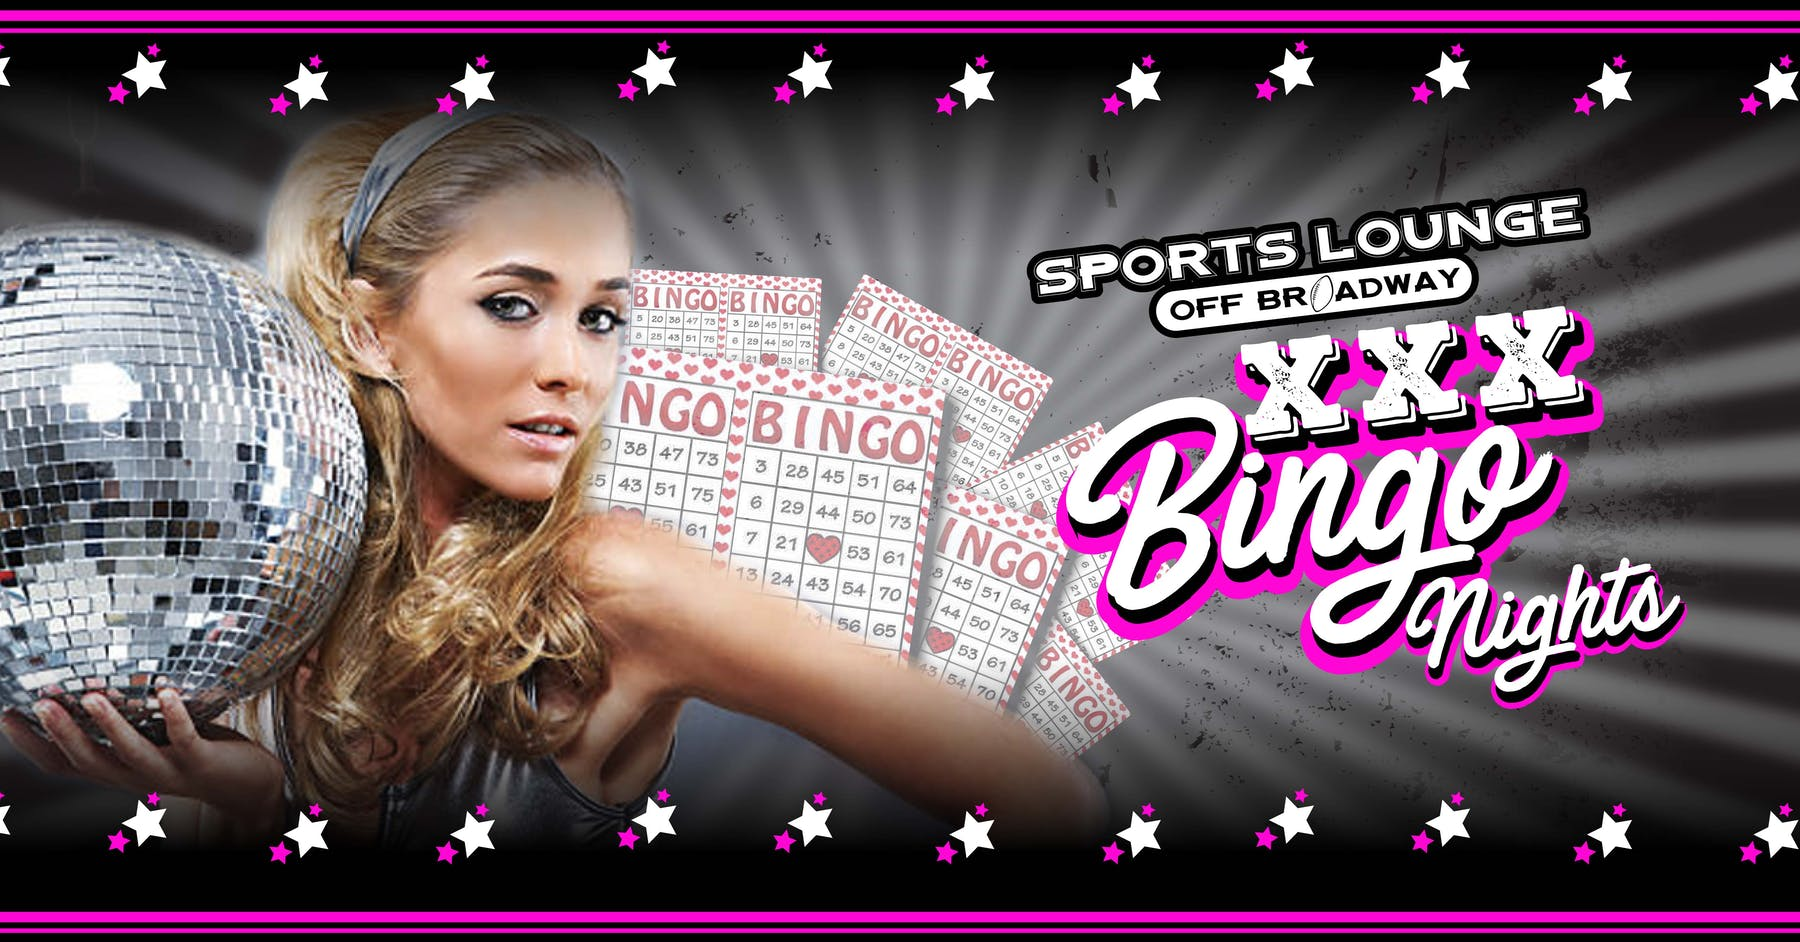 XXX Bingo at Sports Lounge Off Broadway every Thursday Night in Highlands Ranch, Colorado.